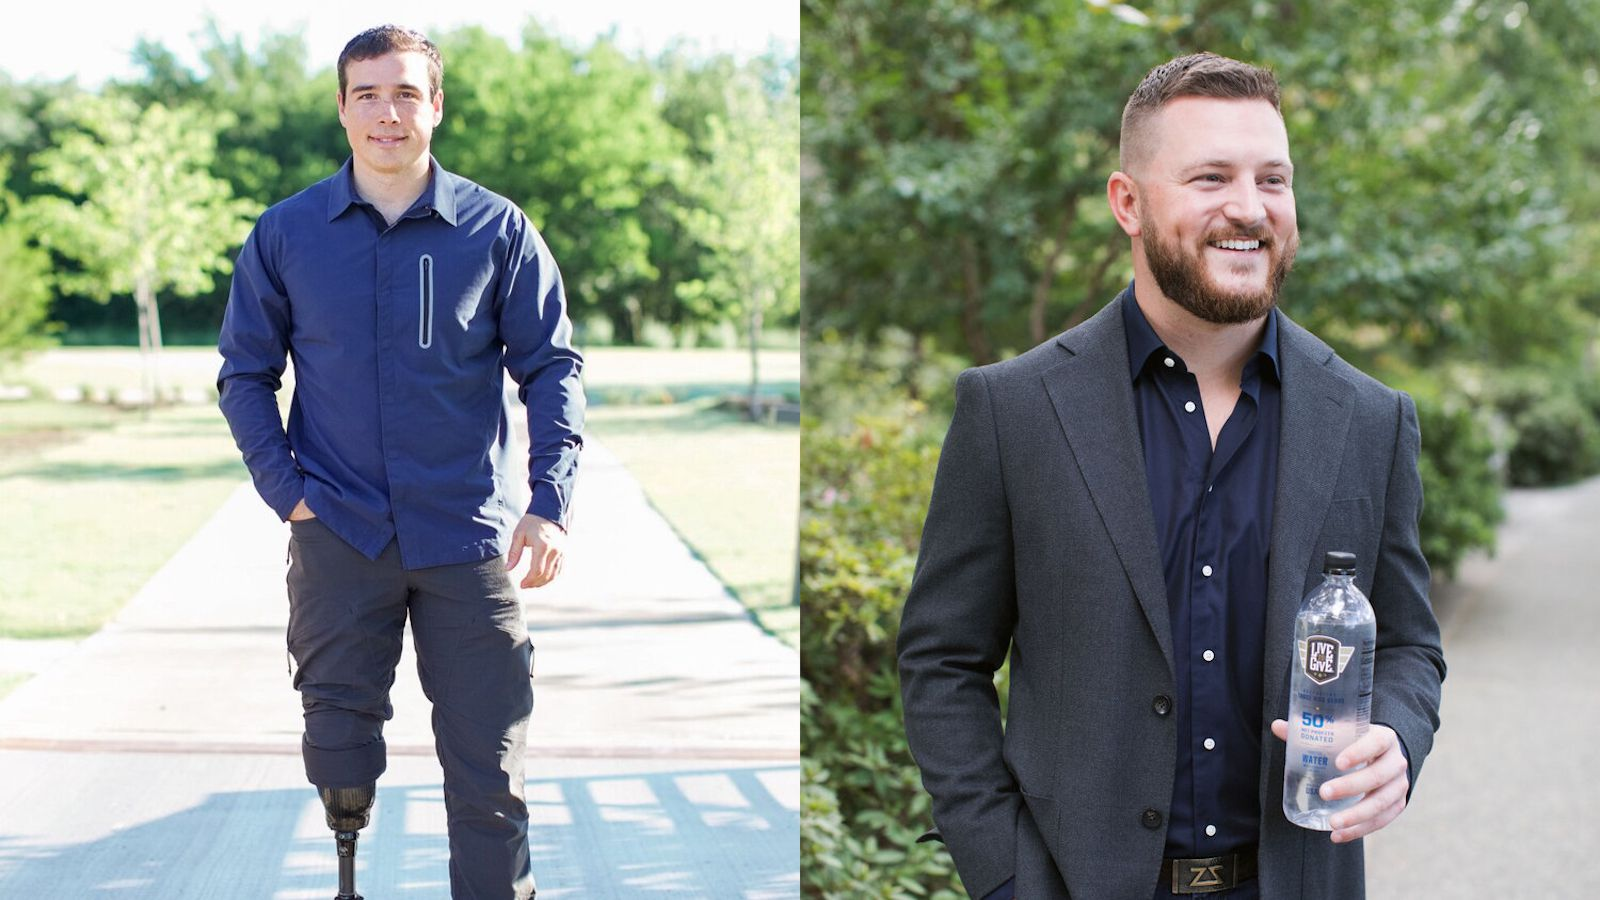 John Wayne Walding (left) and Zach Smith co-founded beverage company Live to Give in 2019 as an easy way for people to give to charity by purchasing something they'd buy anyway.